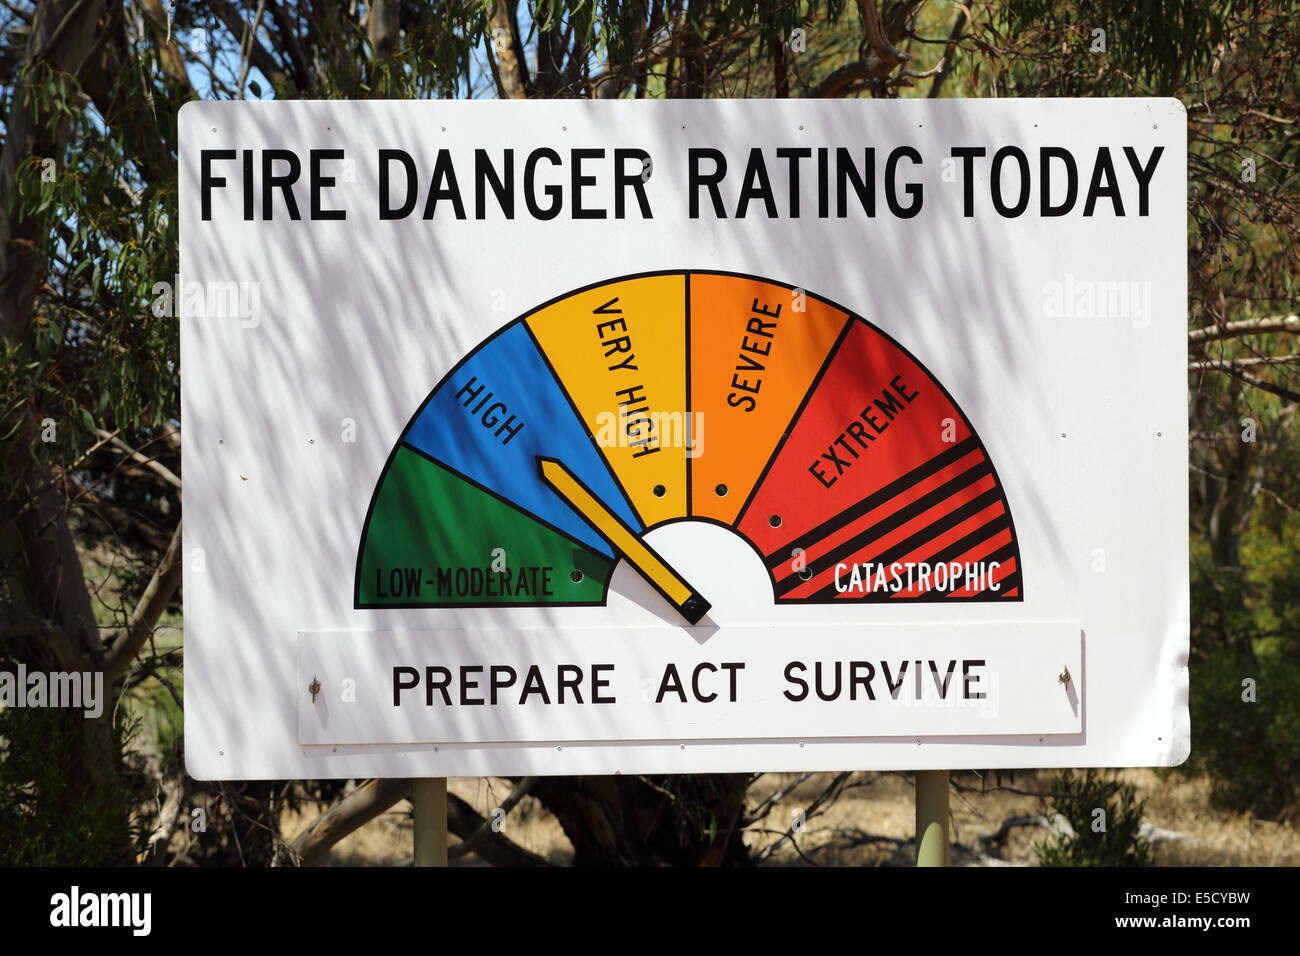 Fire danger rating sign on highway in Western Australia - low to catastrophic. - Stock Image